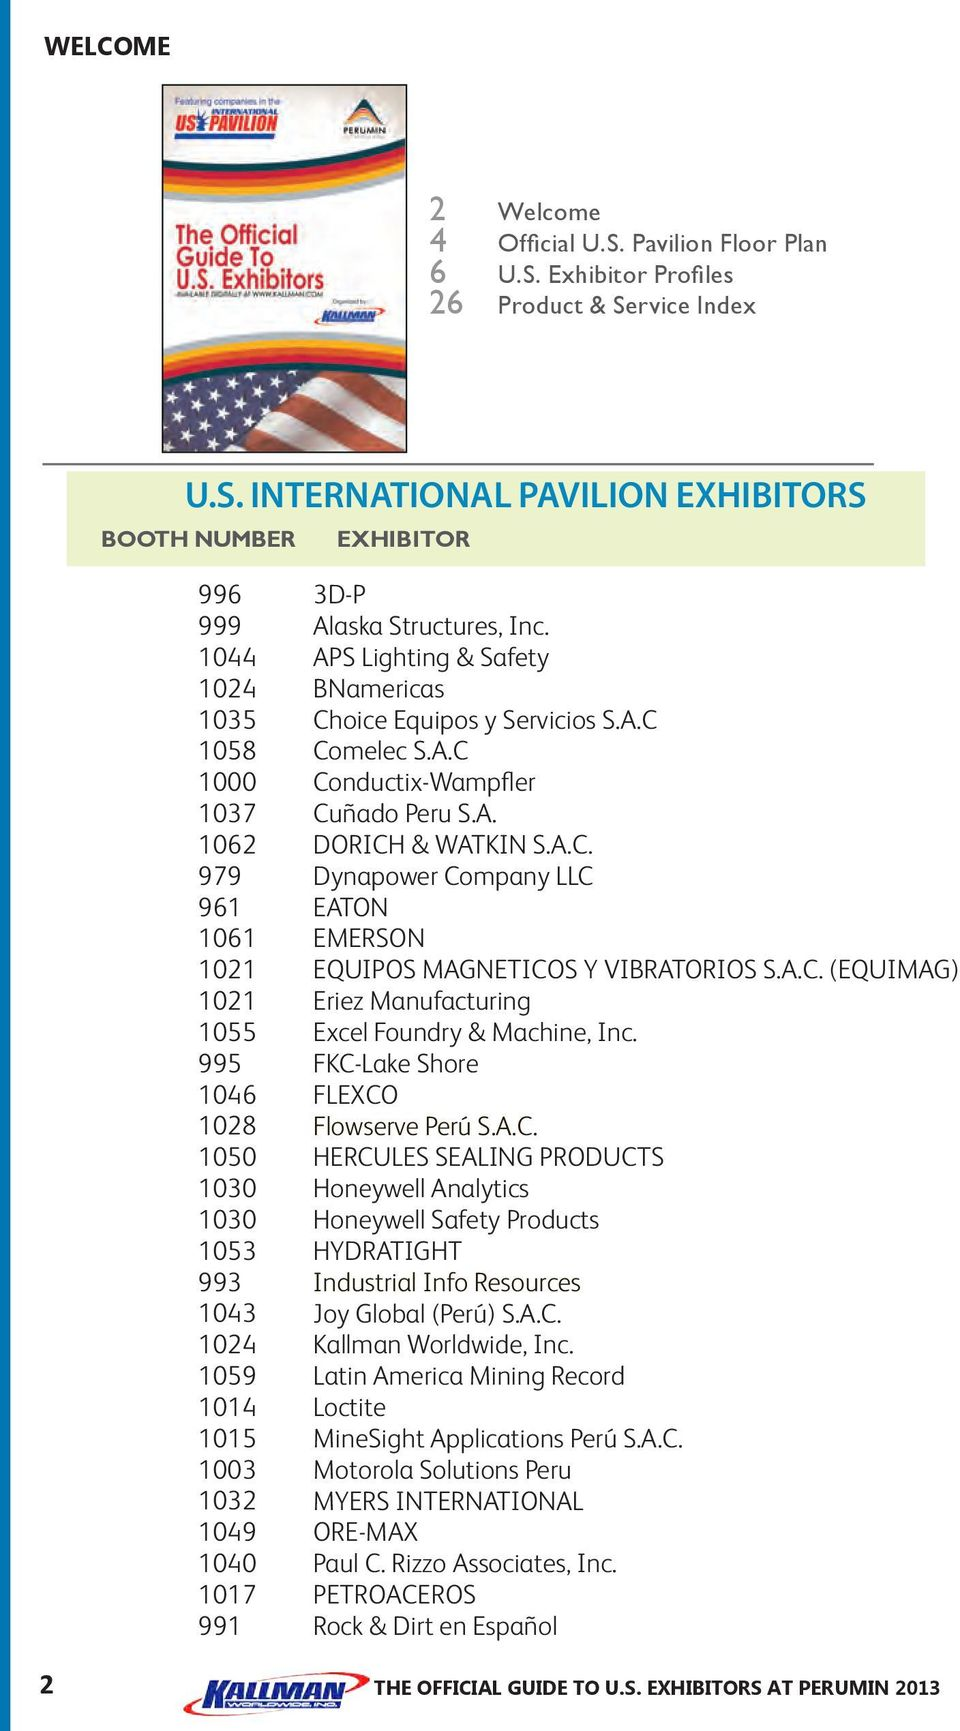 Exhibitor Profiles 26 Product & Se